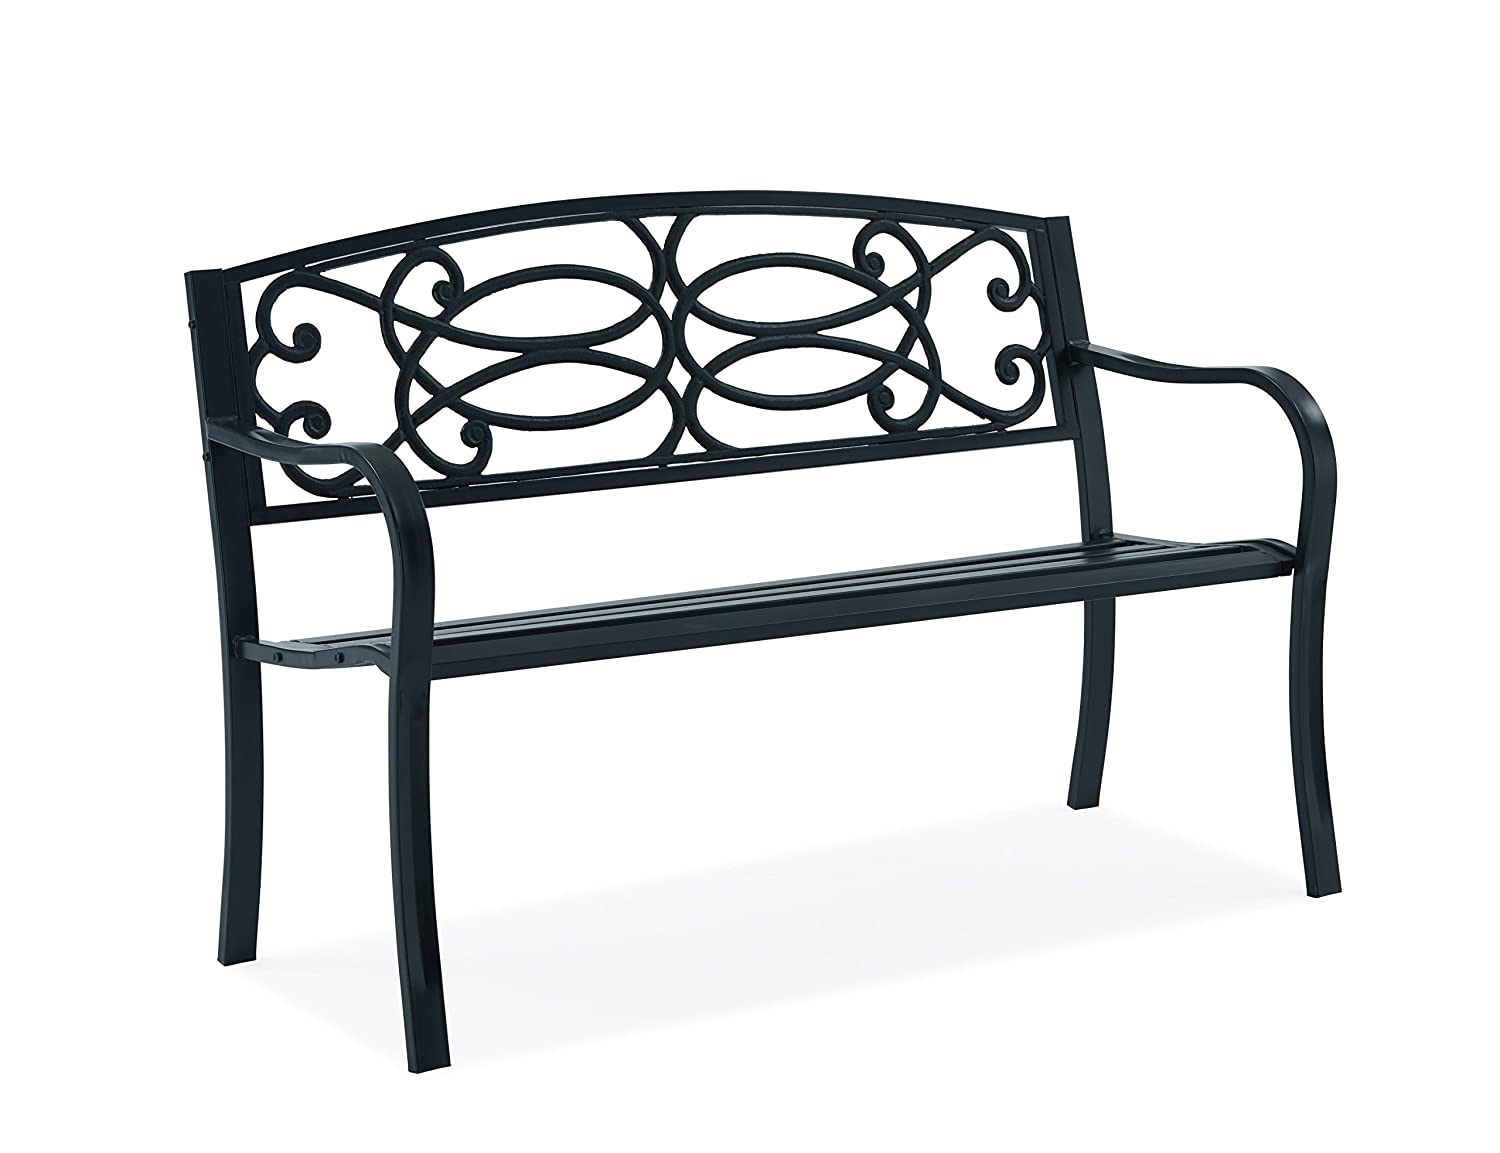 Fineway  Stylish 2 Seater Cast Iron Garden Outdoor Back Park Bench Seat  Furniture - Loveseat Conservatory, Patio, Lawn or Garden Seat (Scroll  Design